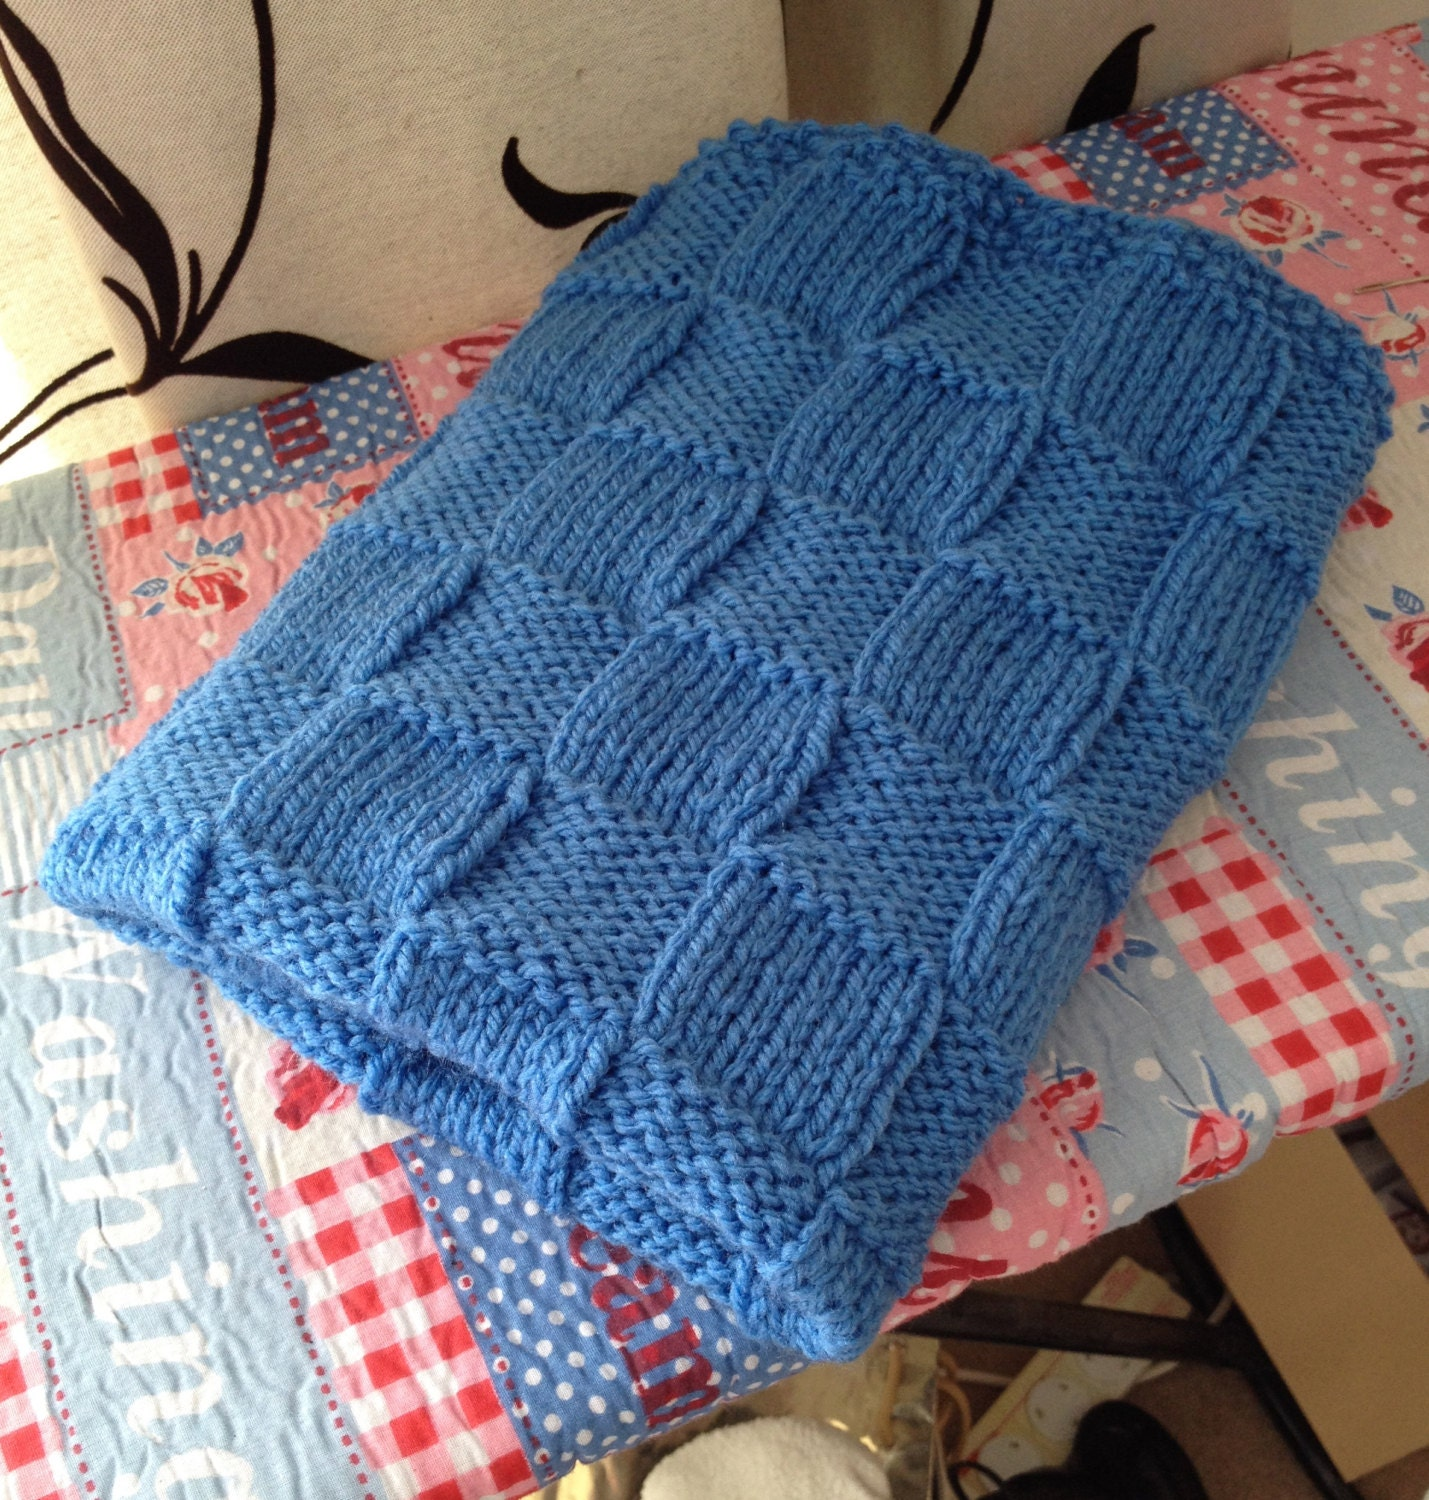 Knitted Sock Pattern Free : Easy Knitting Pattern Chunky Check Pram Blanket Basketweave